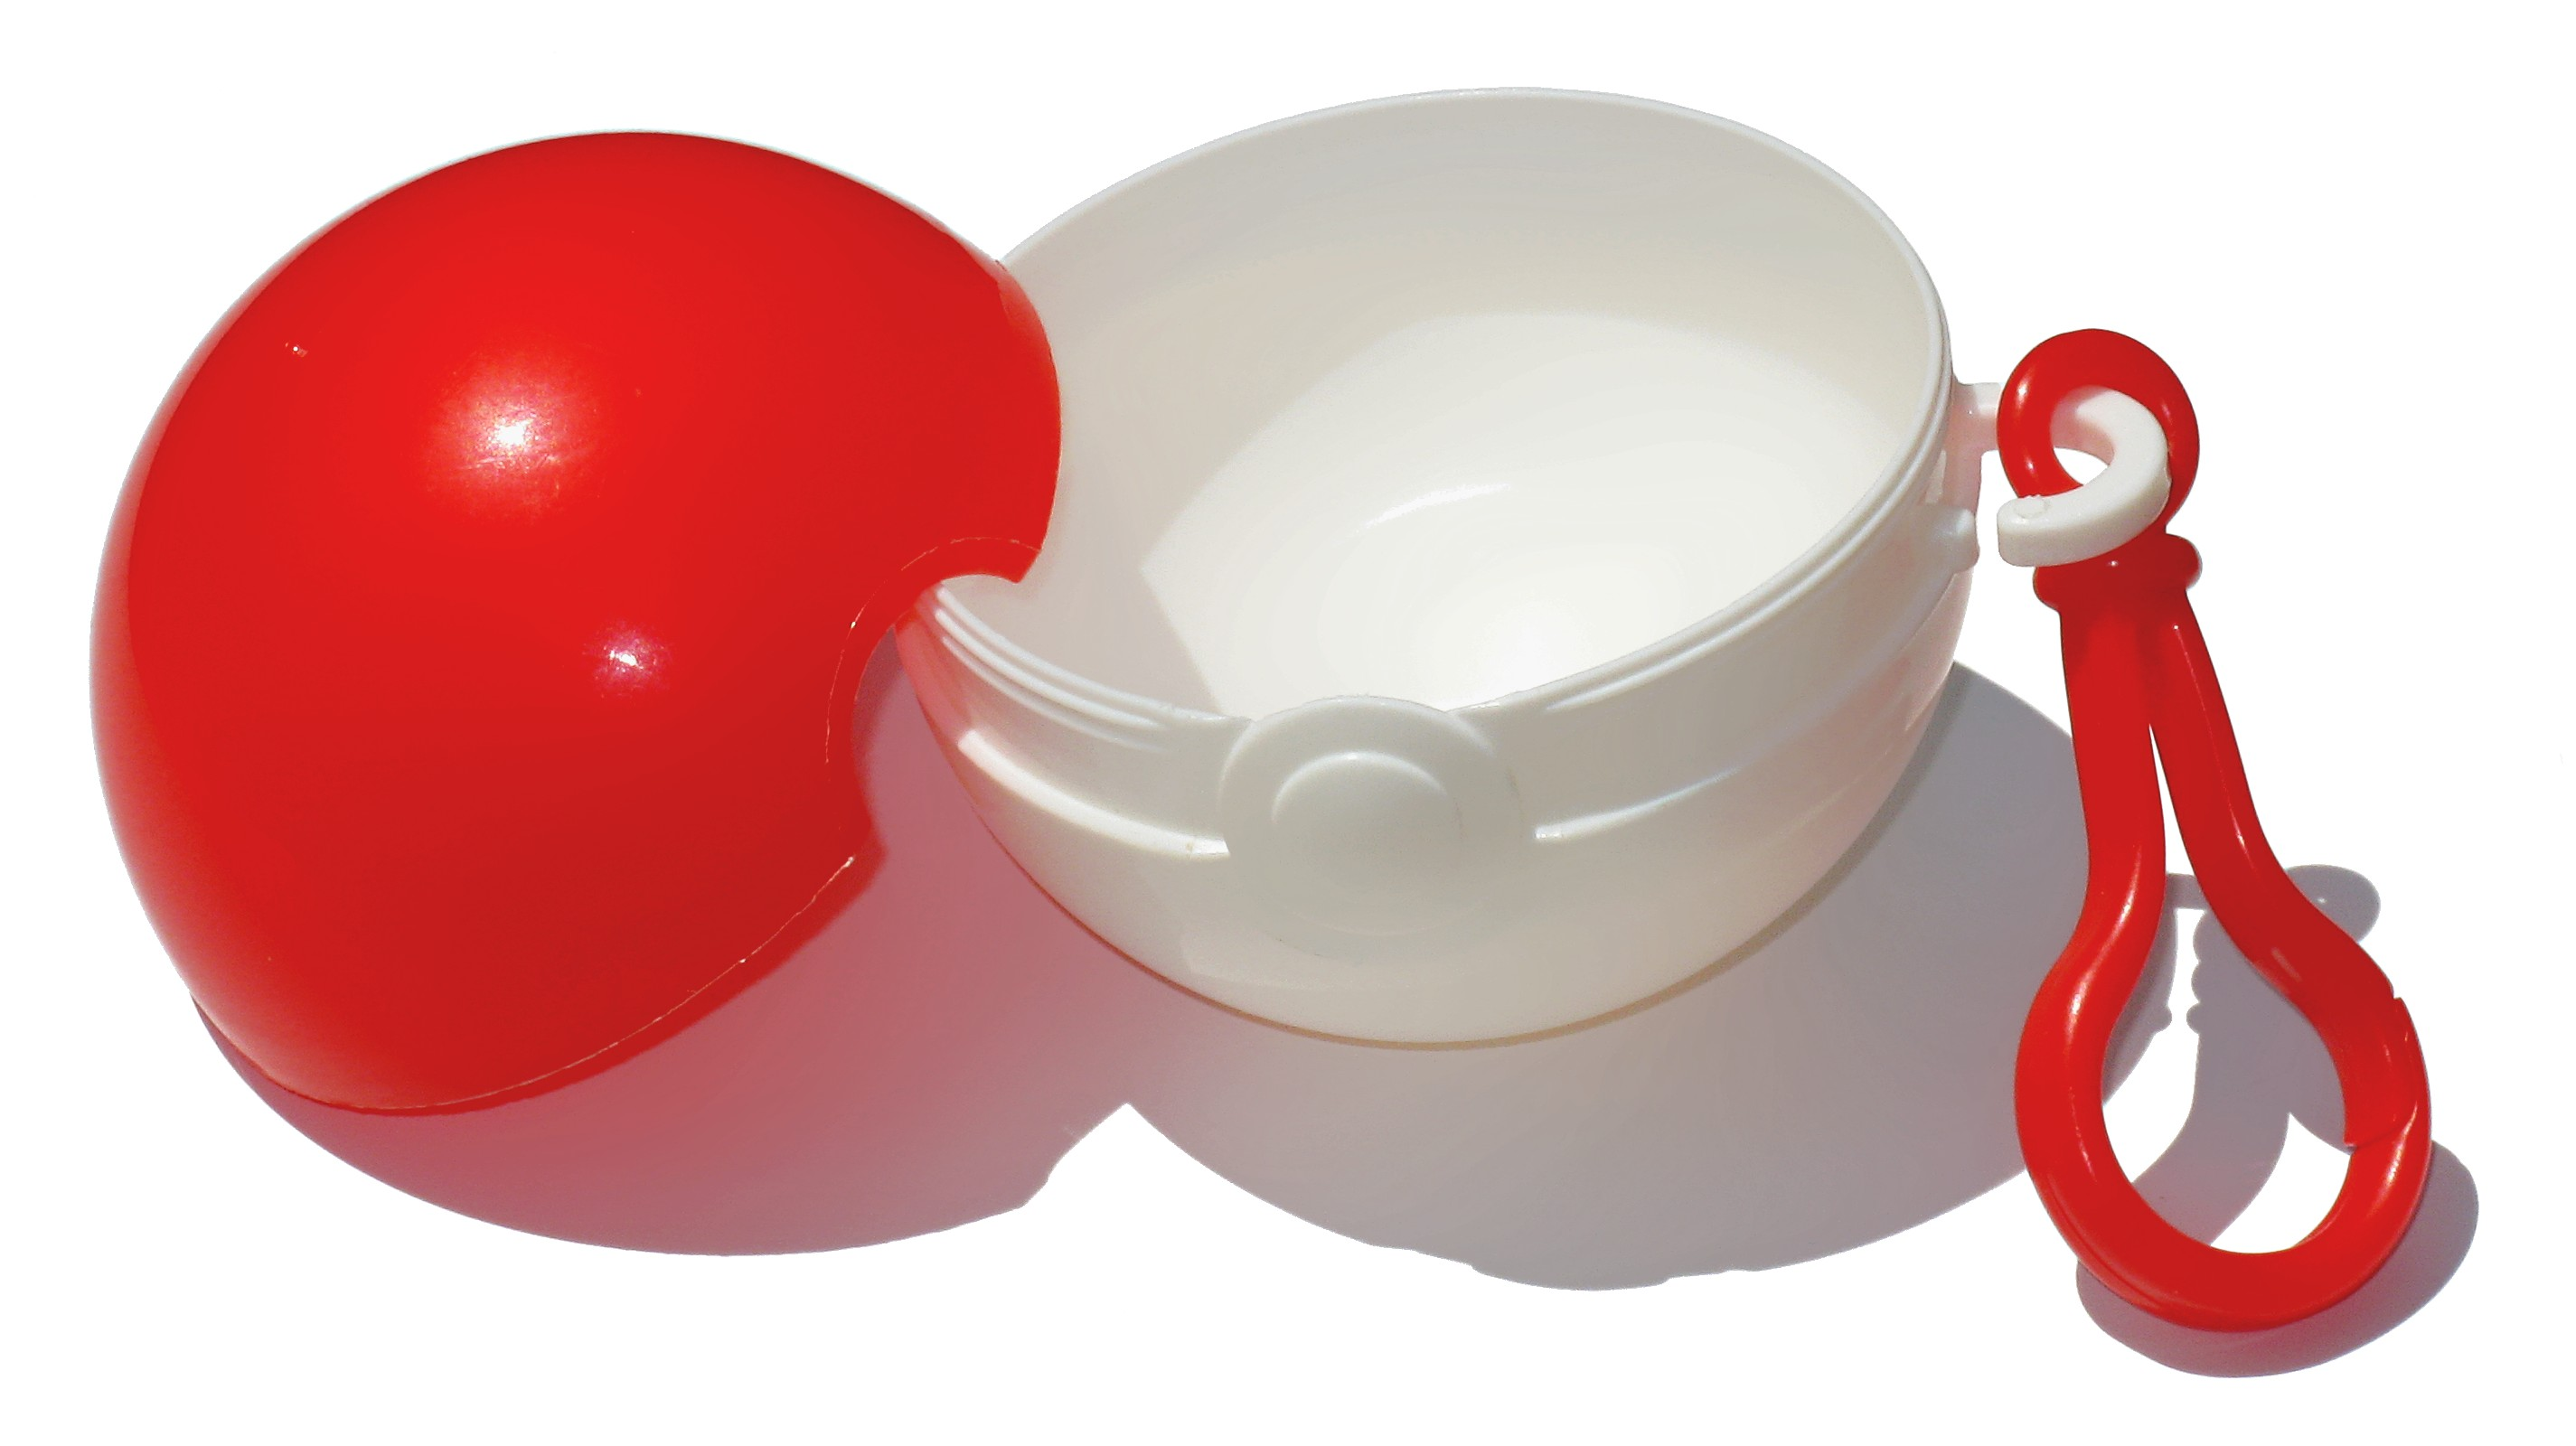 The Pokéball containers that were recalled. Photo via Wikimedia Commons.